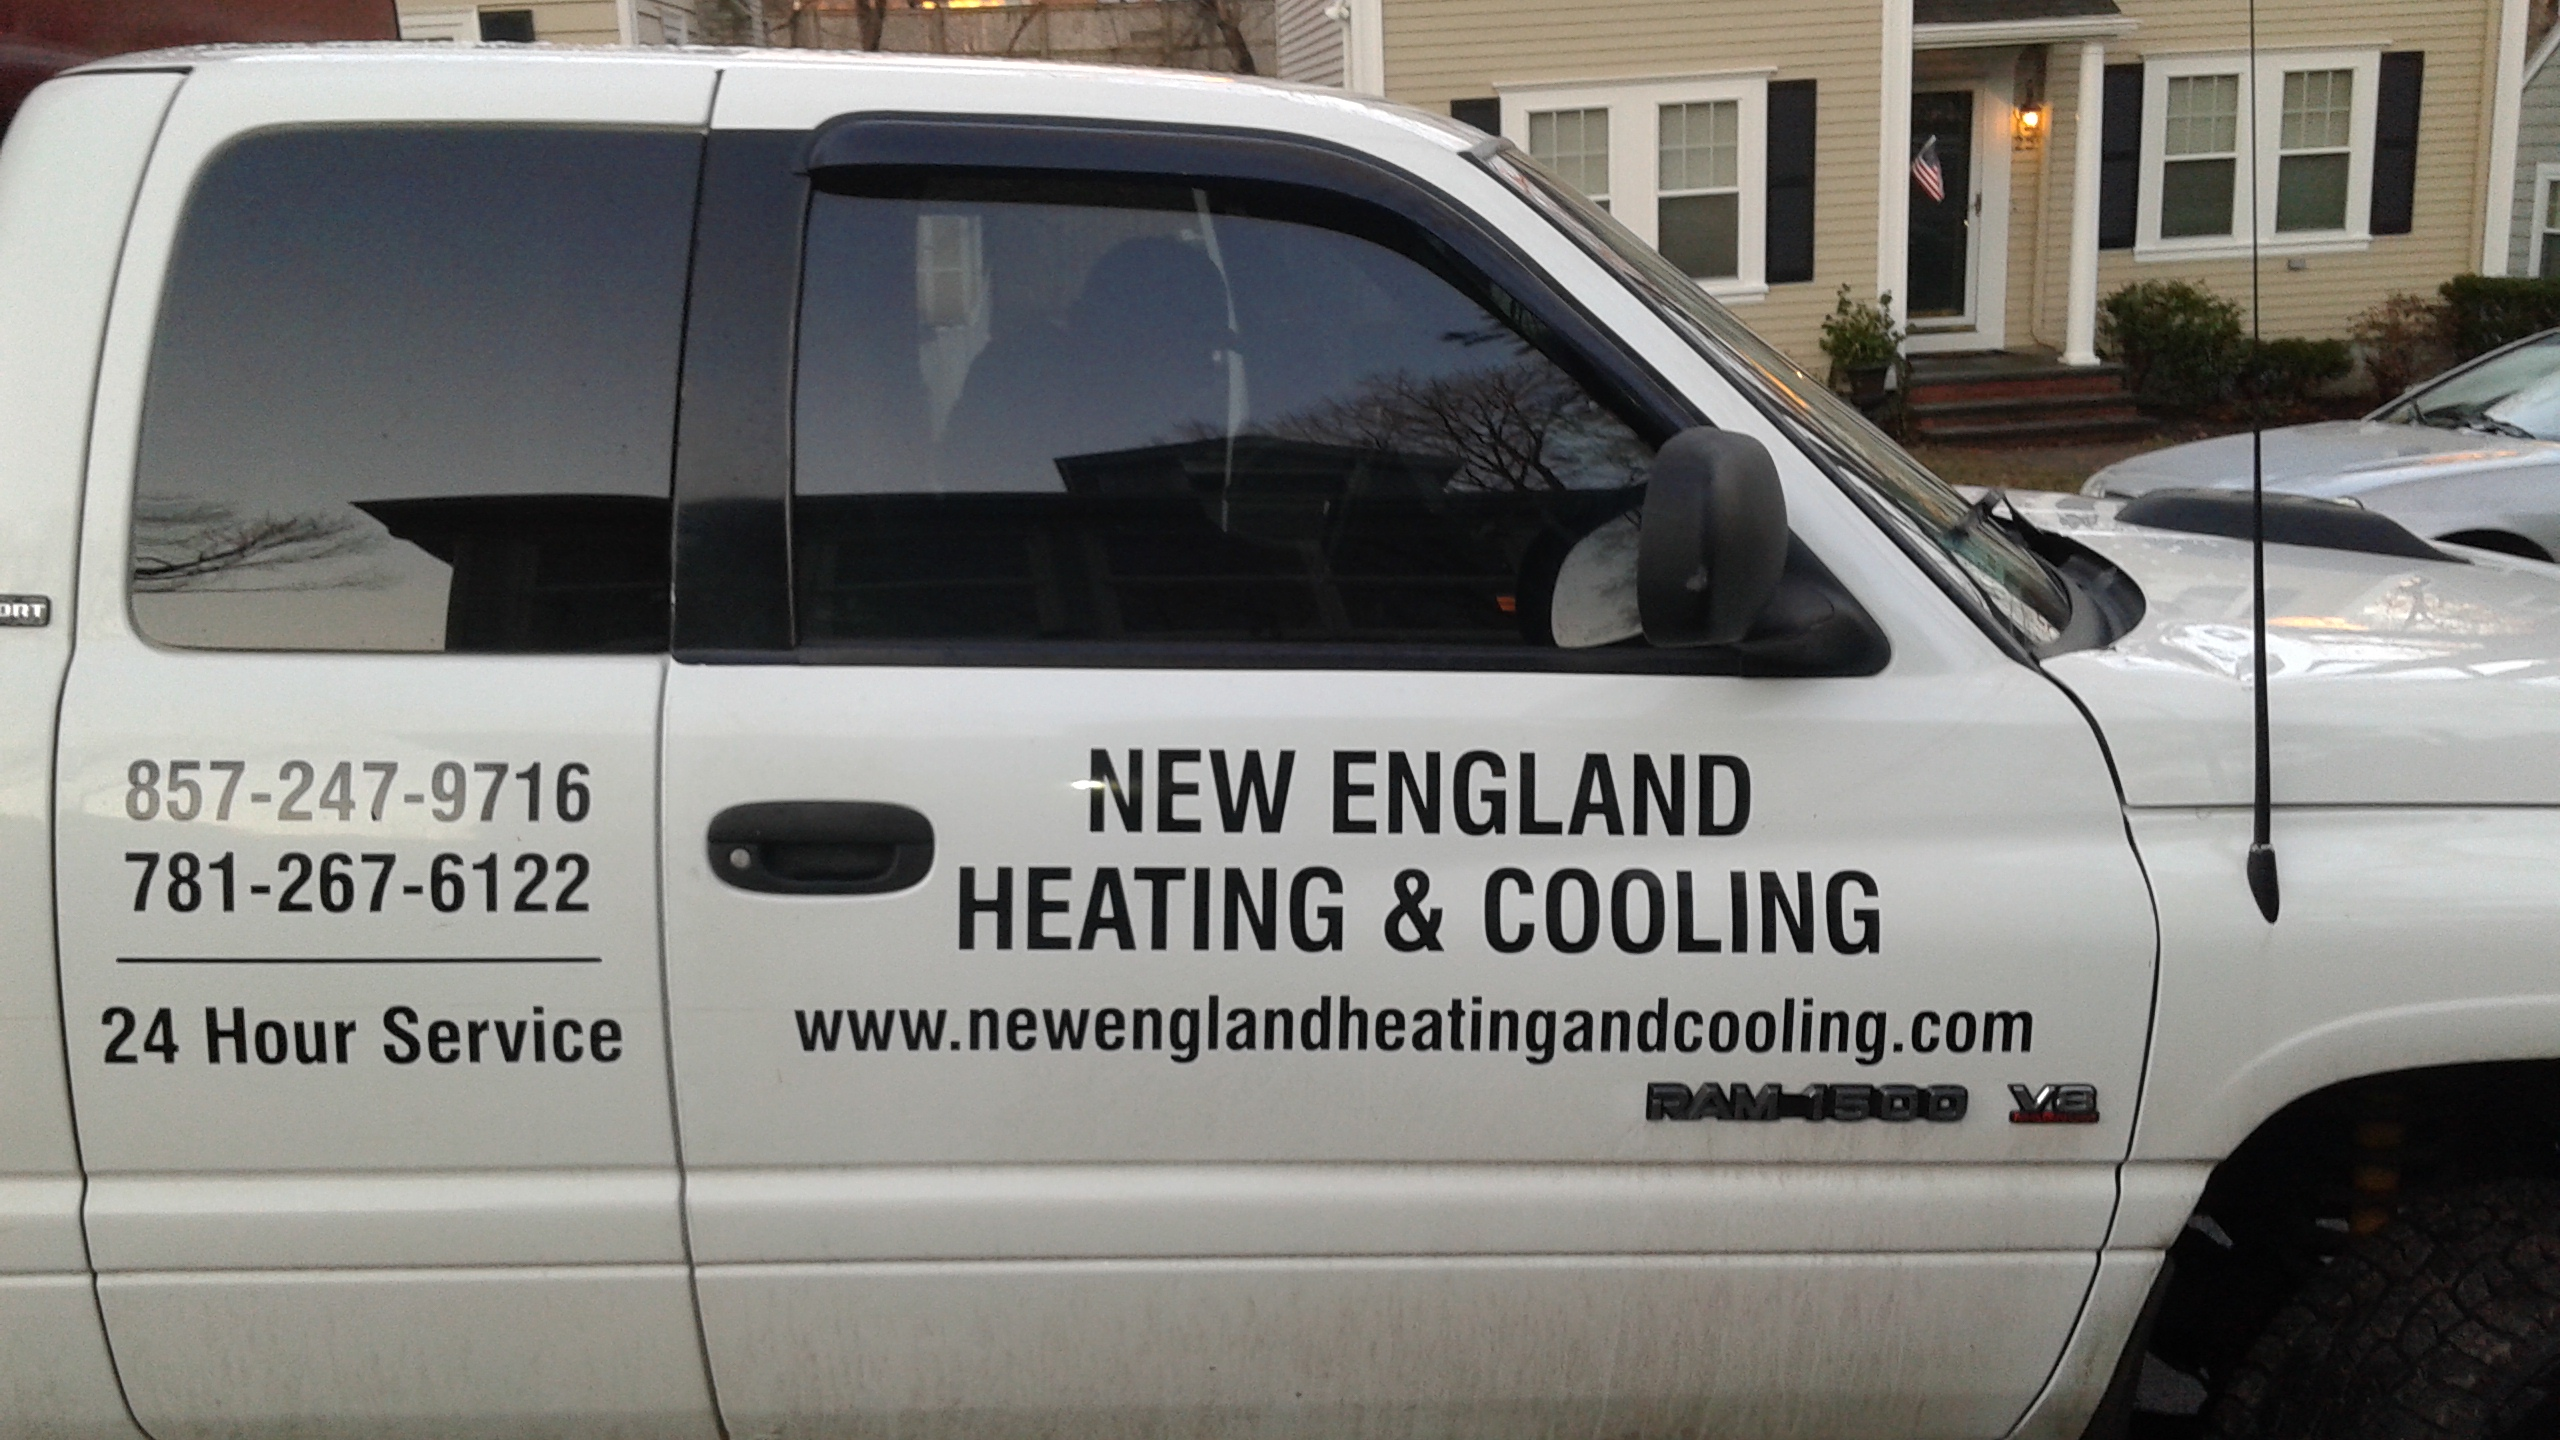 New England Heating and Cooling 1271 Washington St # 102, East Weymouth, MA 02189 - YP.com